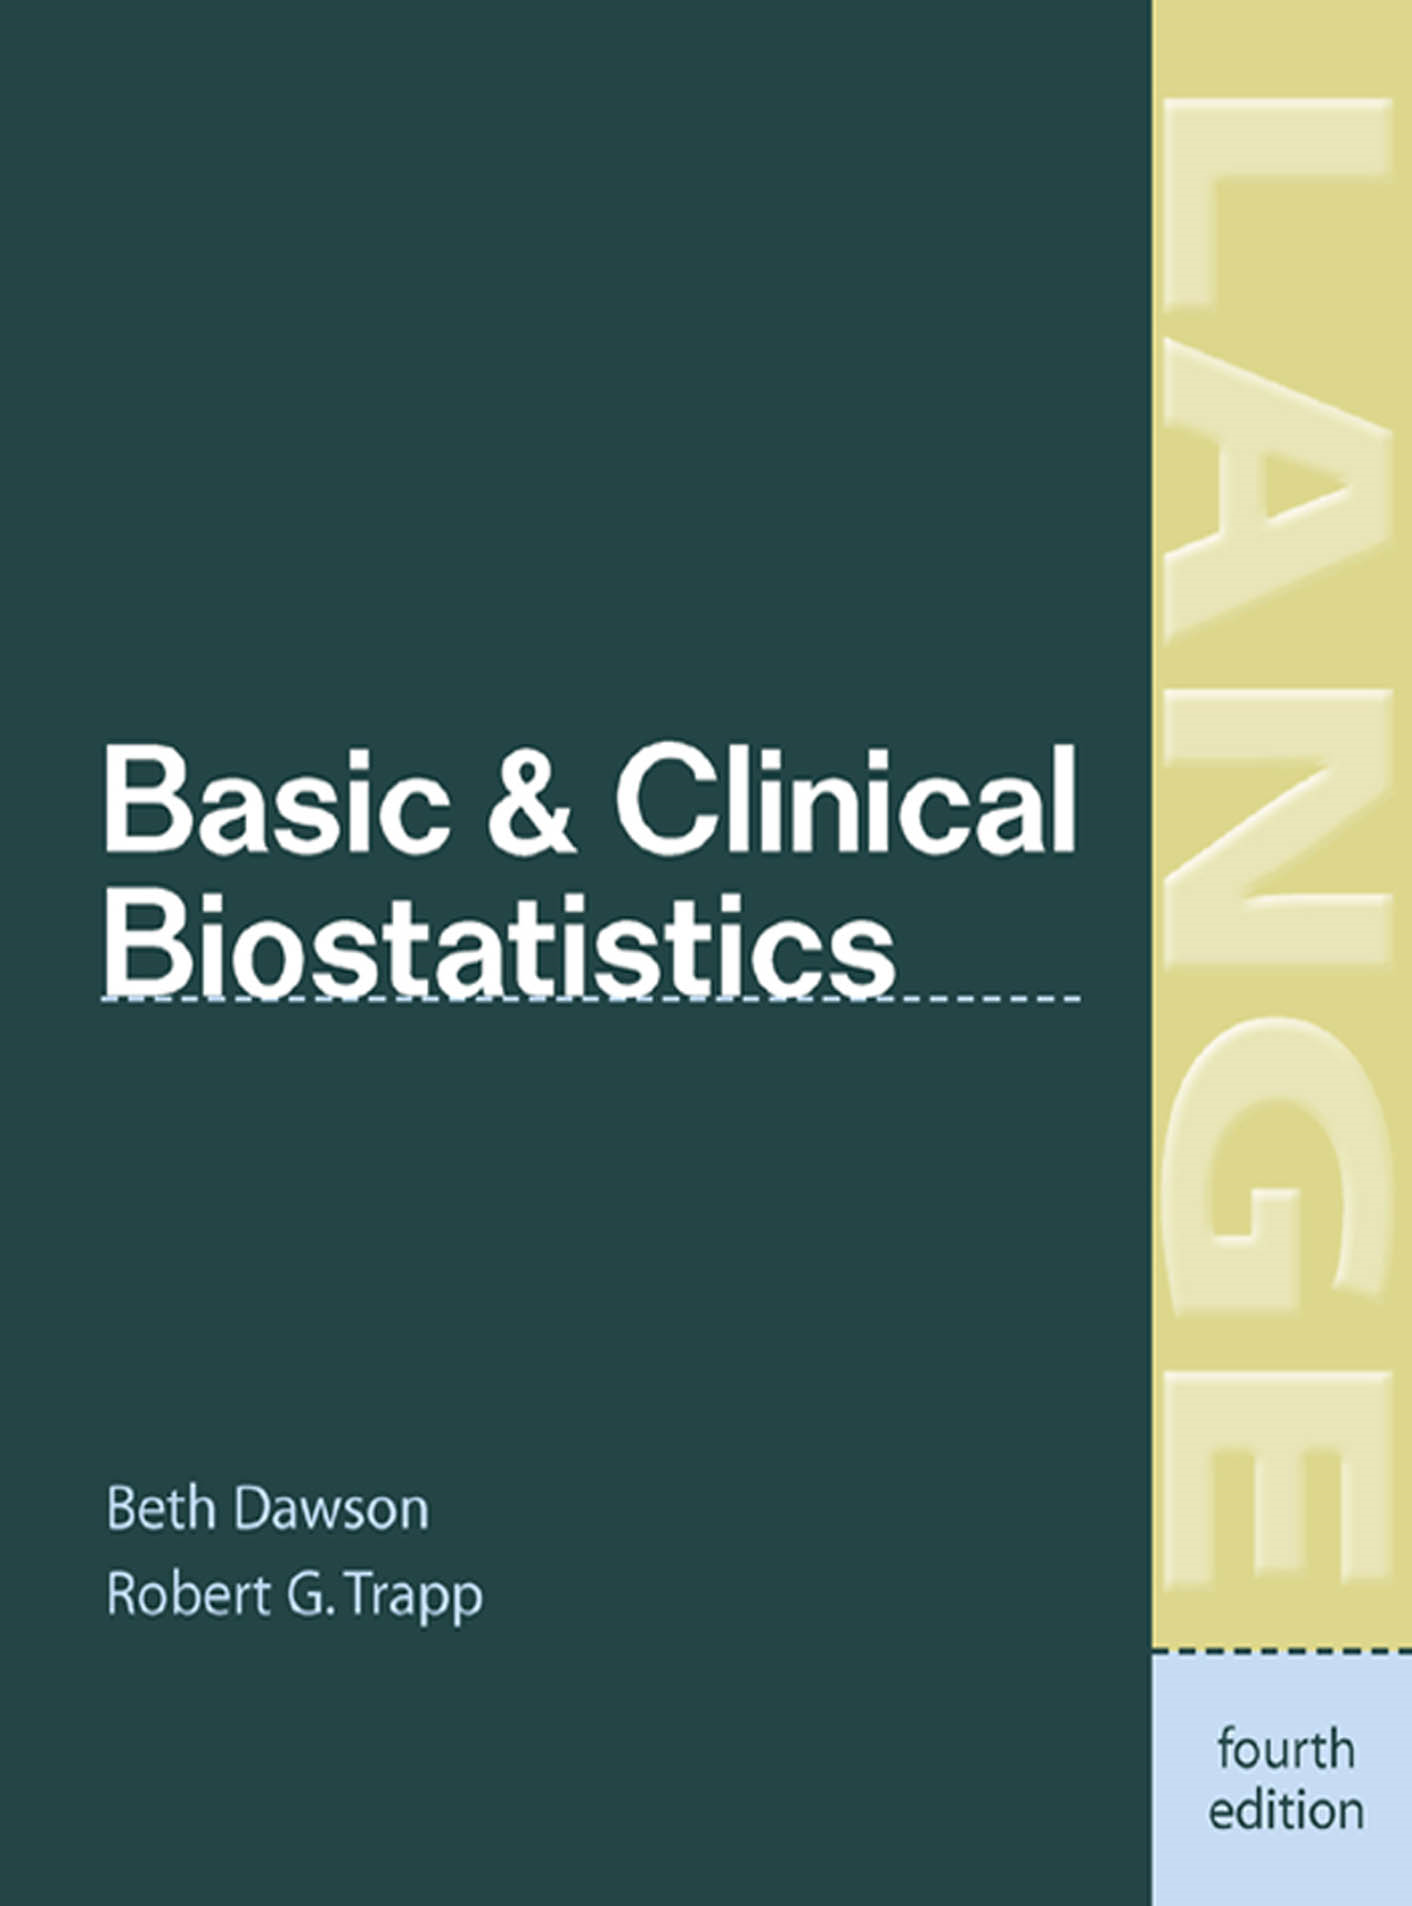 Basic & Clinical Biostatistics: Fourth Edition